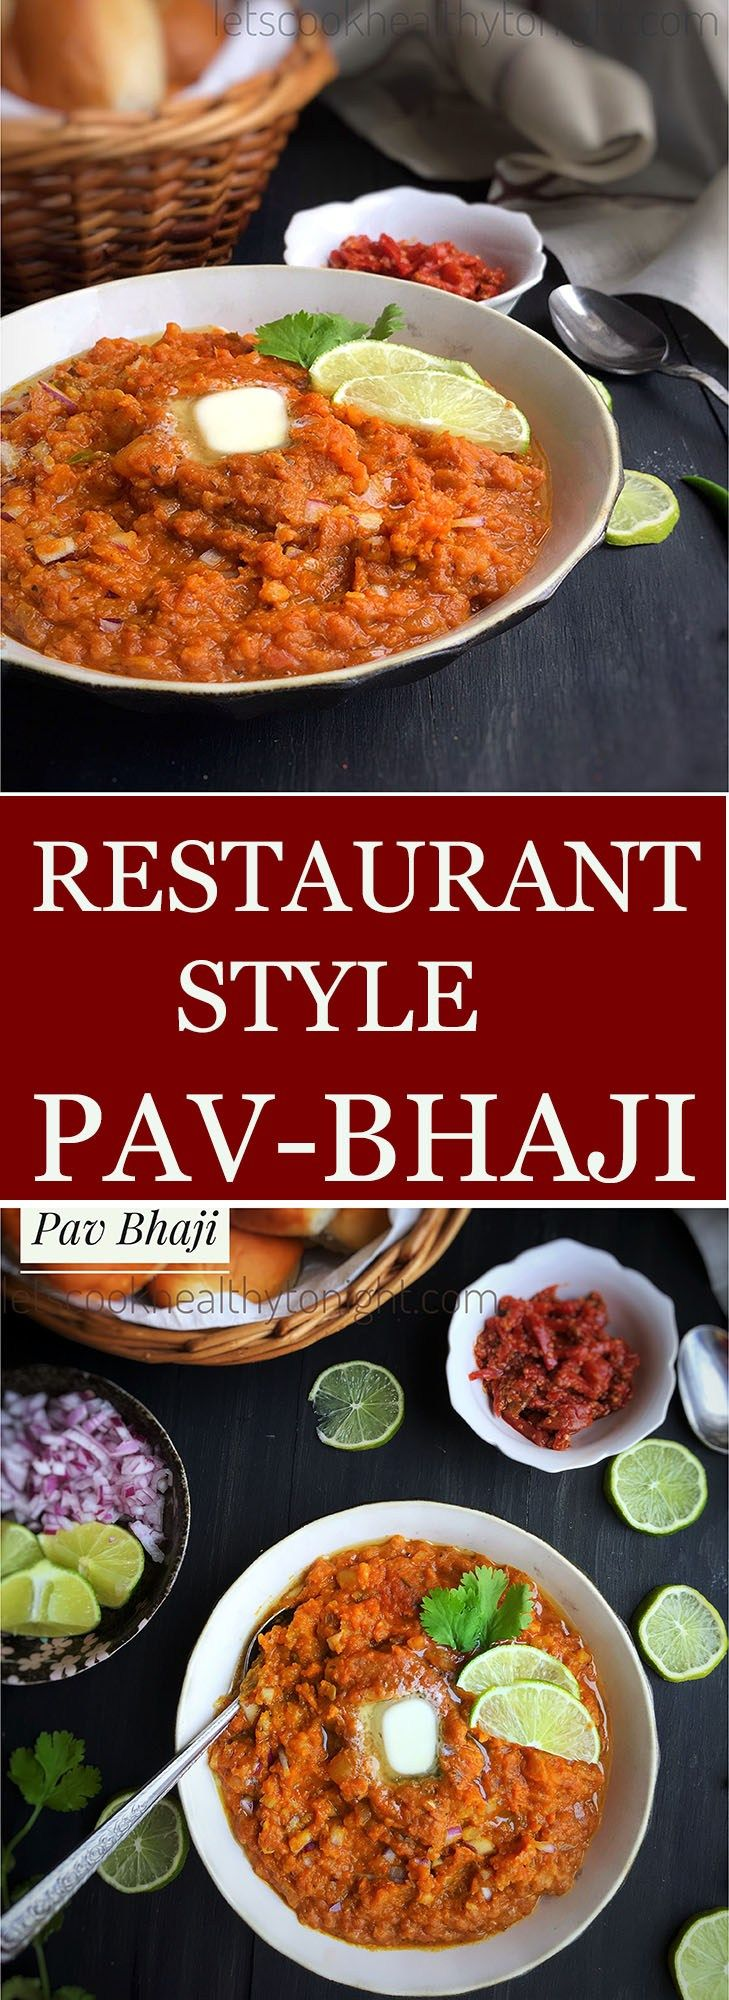 Make Pav Bhaji Restaurant style with this perfect recipe for Pav Bhaji. Pav Bhaji is the most popular Mumbai street food. Make at home with this recipe